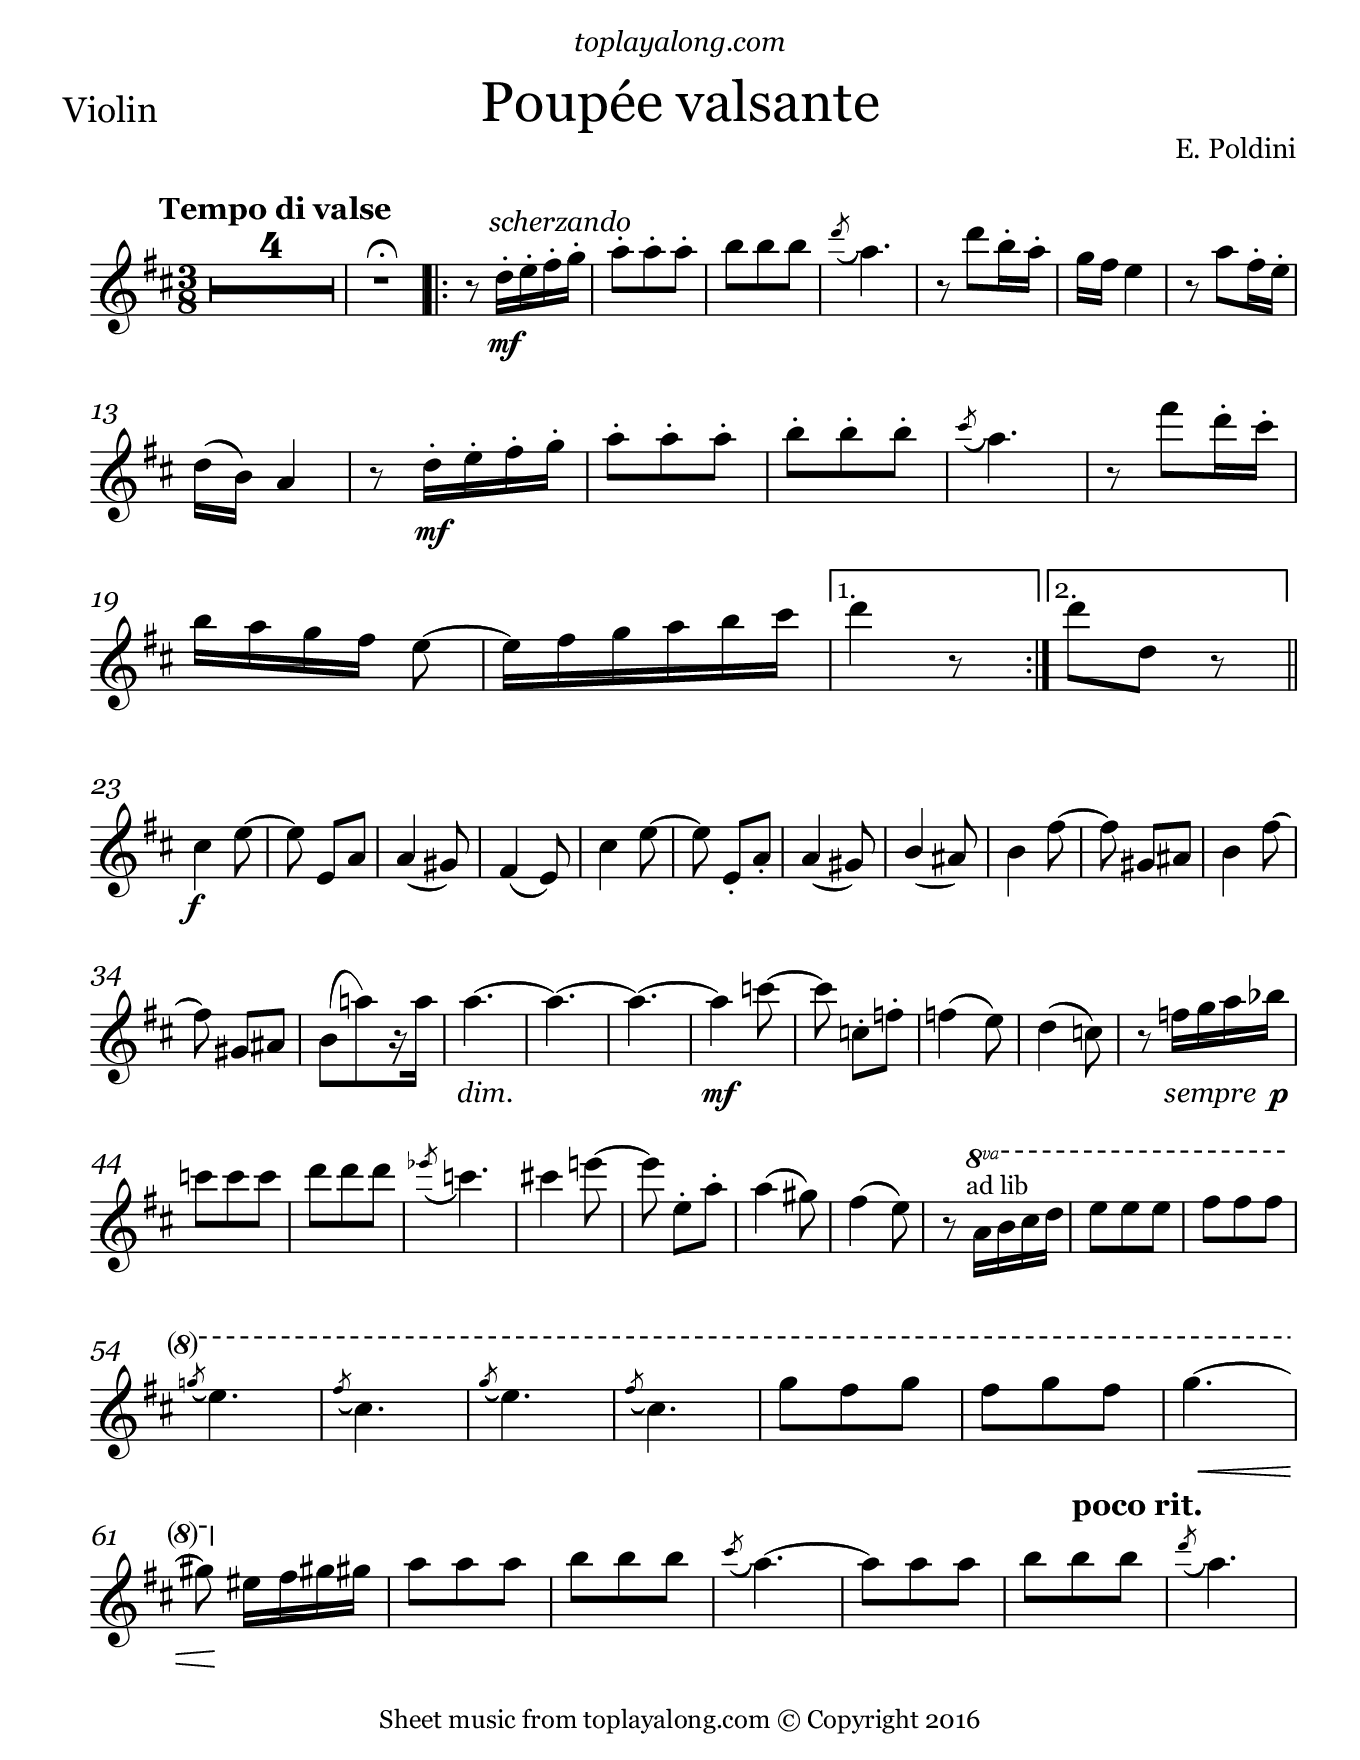 Poupée valsante by Poldini. Sheet music for Violin, page 1.